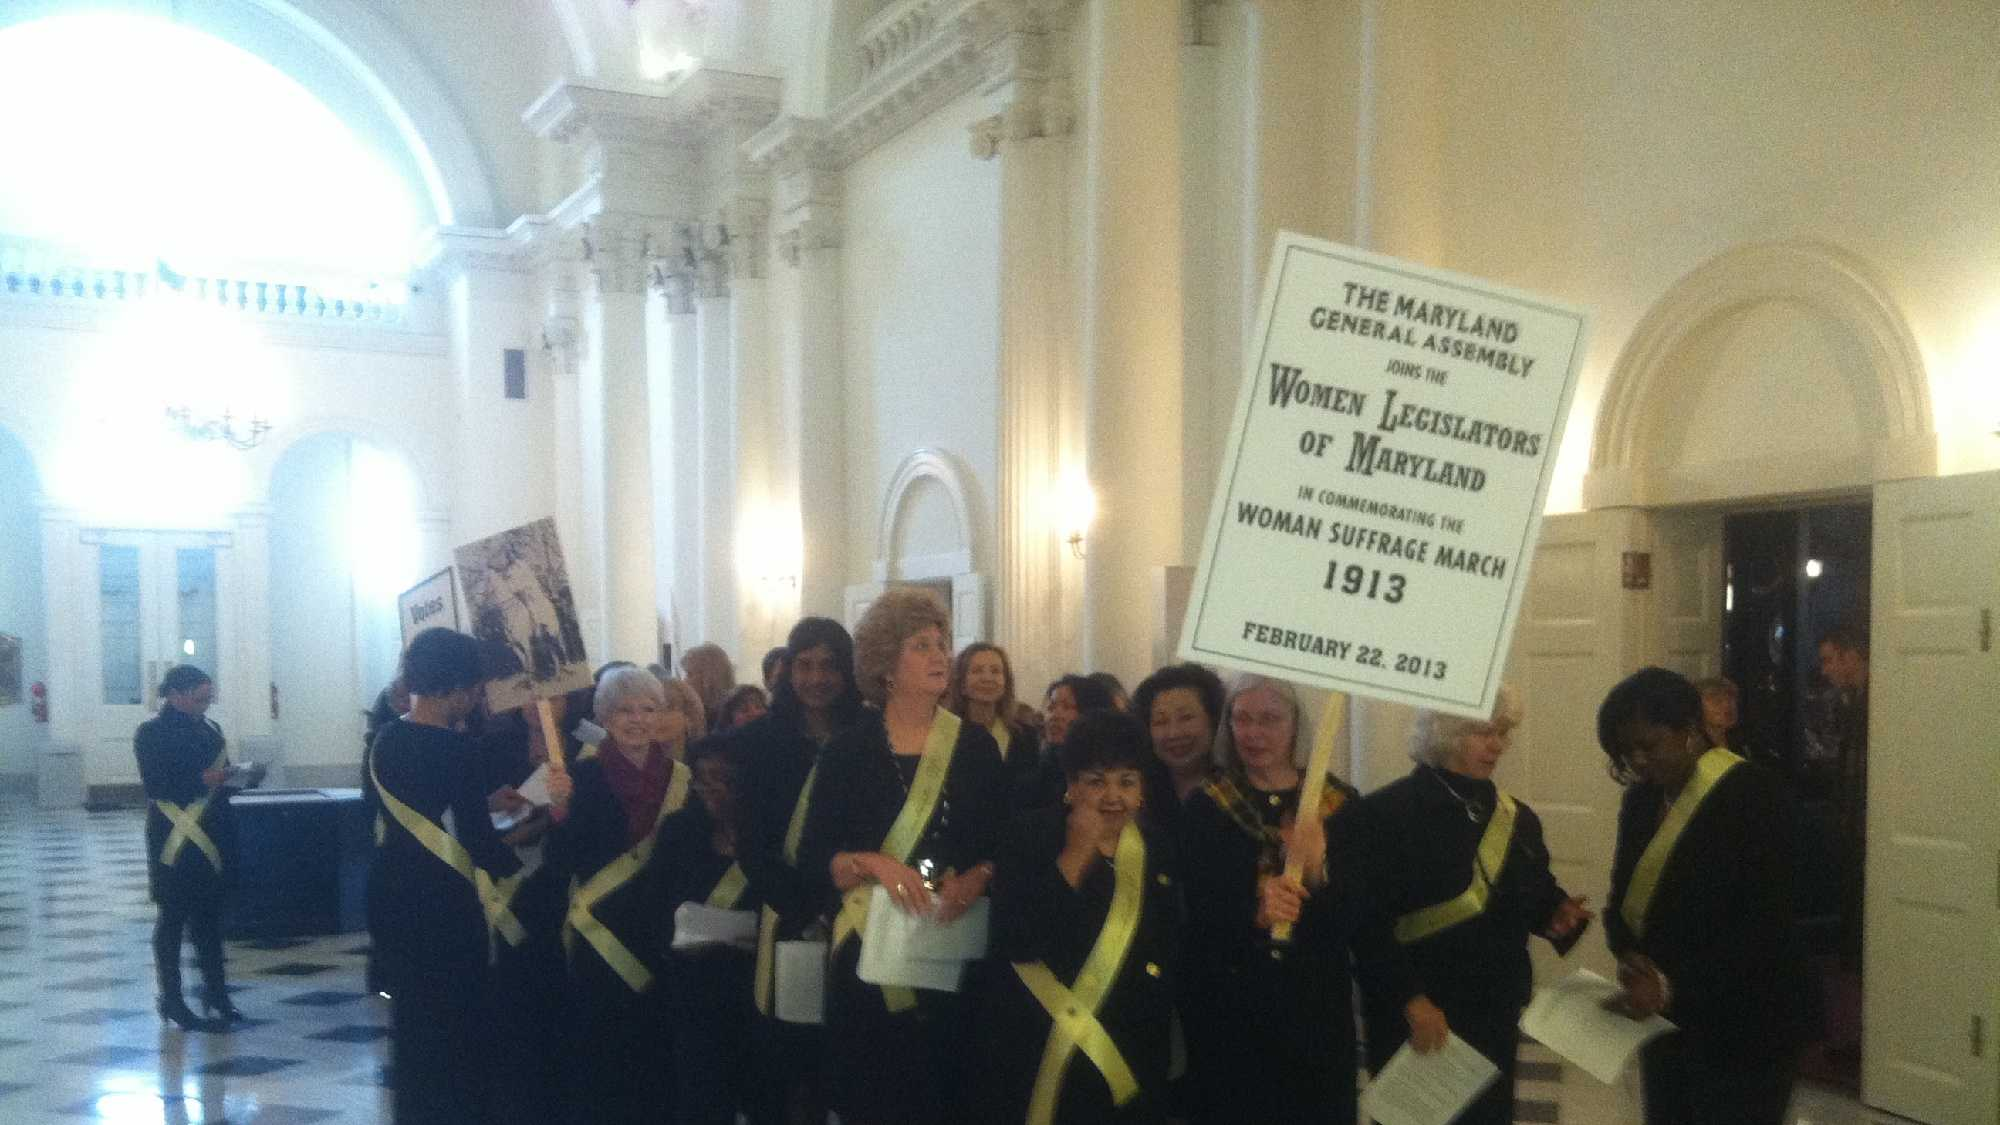 Feb. 22: More than 50 women from the State House and Senate re-enact the women's suffrage parade that changed history in 1913.